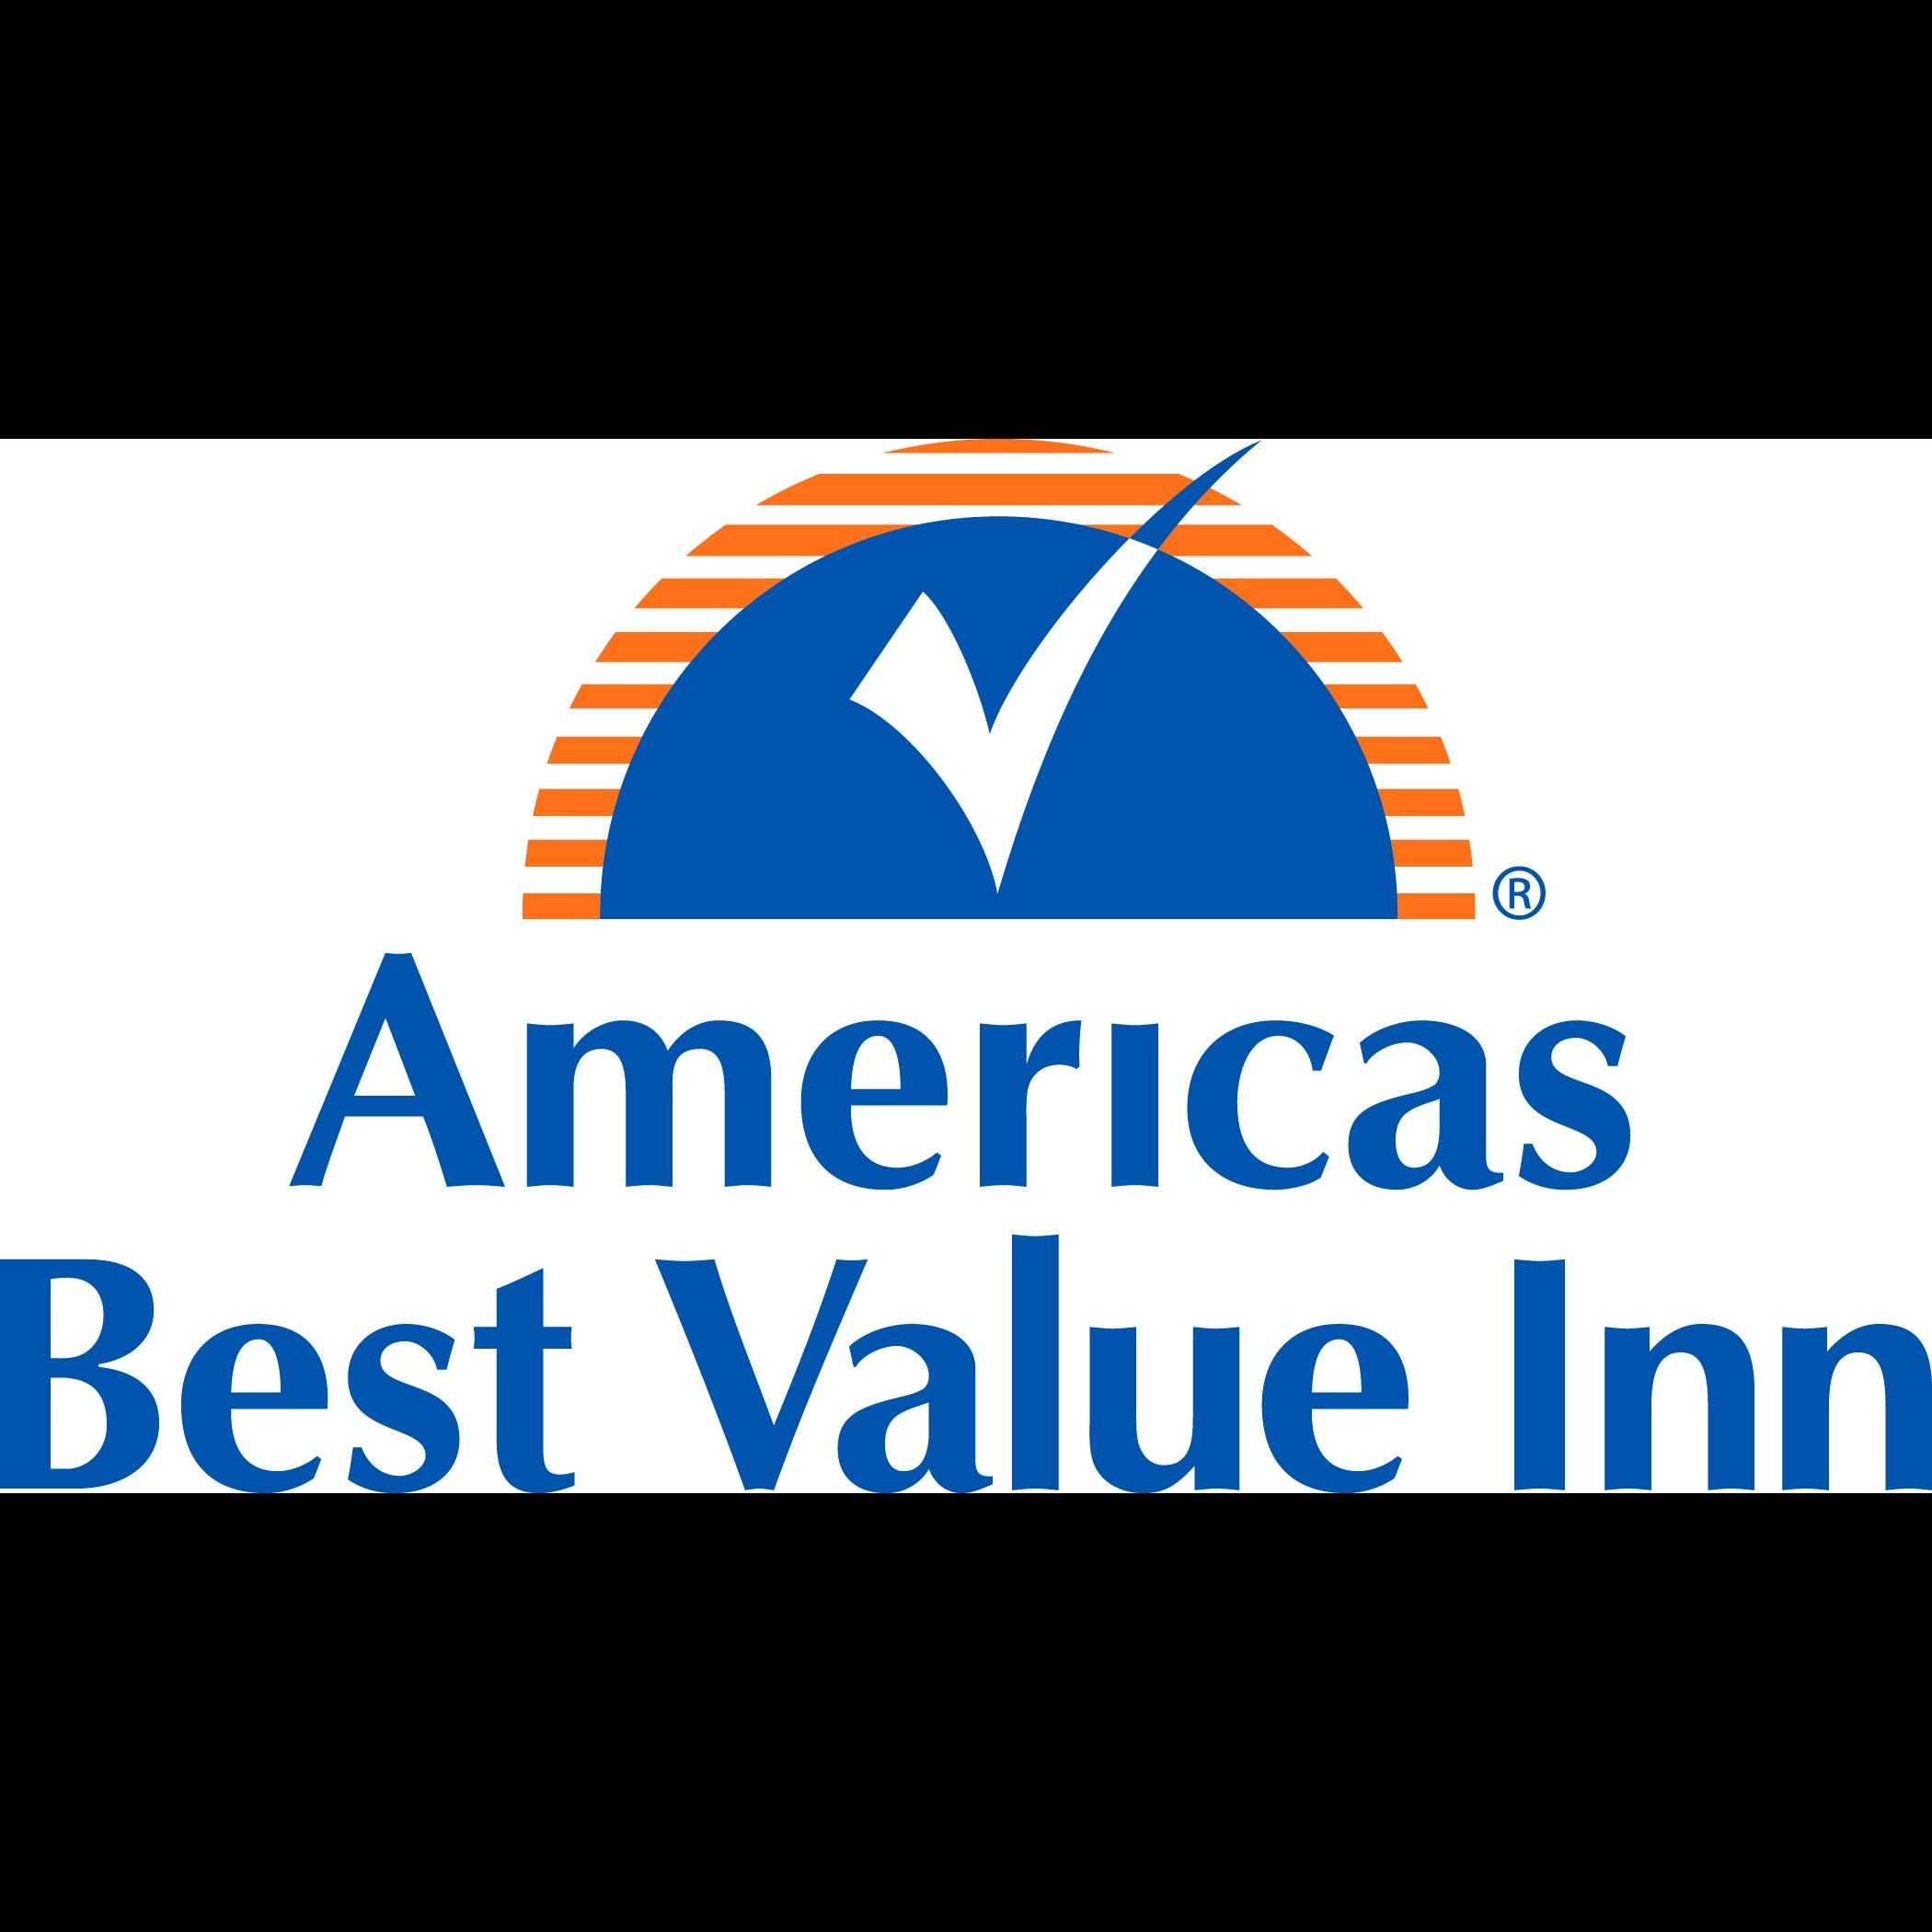 Americas Best Value Inn Niagara Falls - Niagara Falls, NY - Hotels & Motels